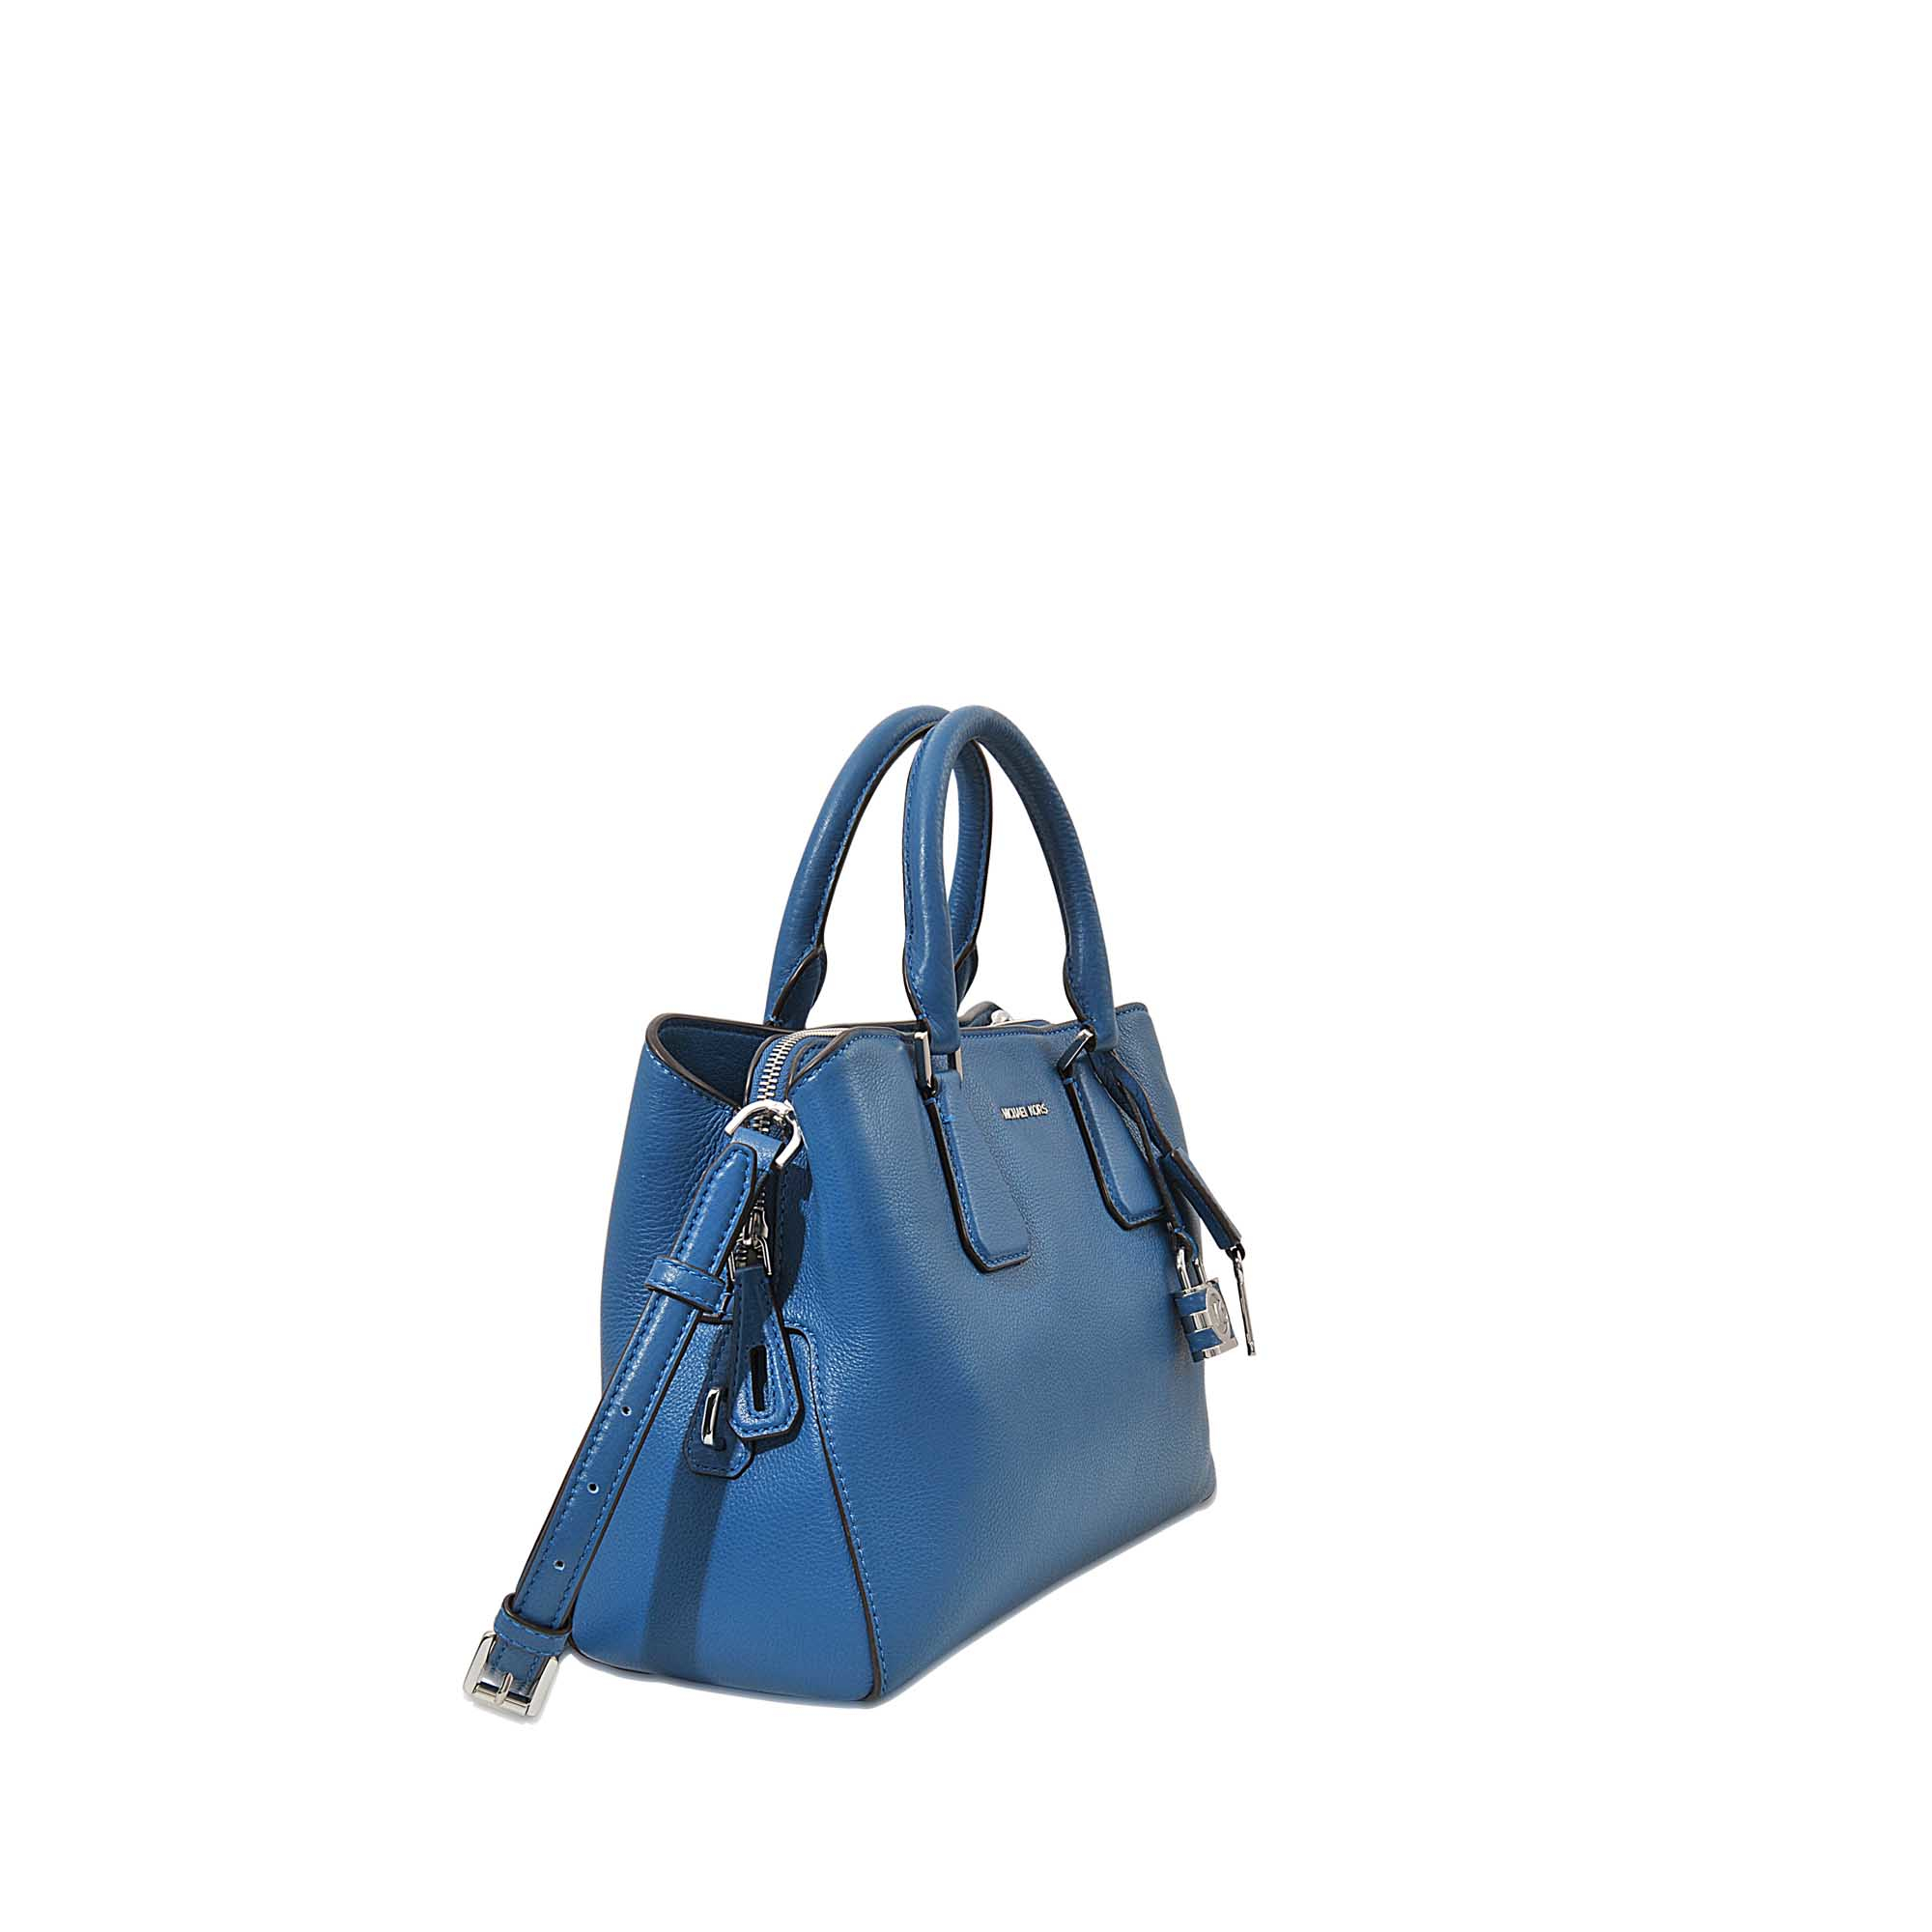 8dfde7703b ... Large Leather Satchel Lyst Michael michael kors Camille Medium Satchel  in Blue Lyst ...